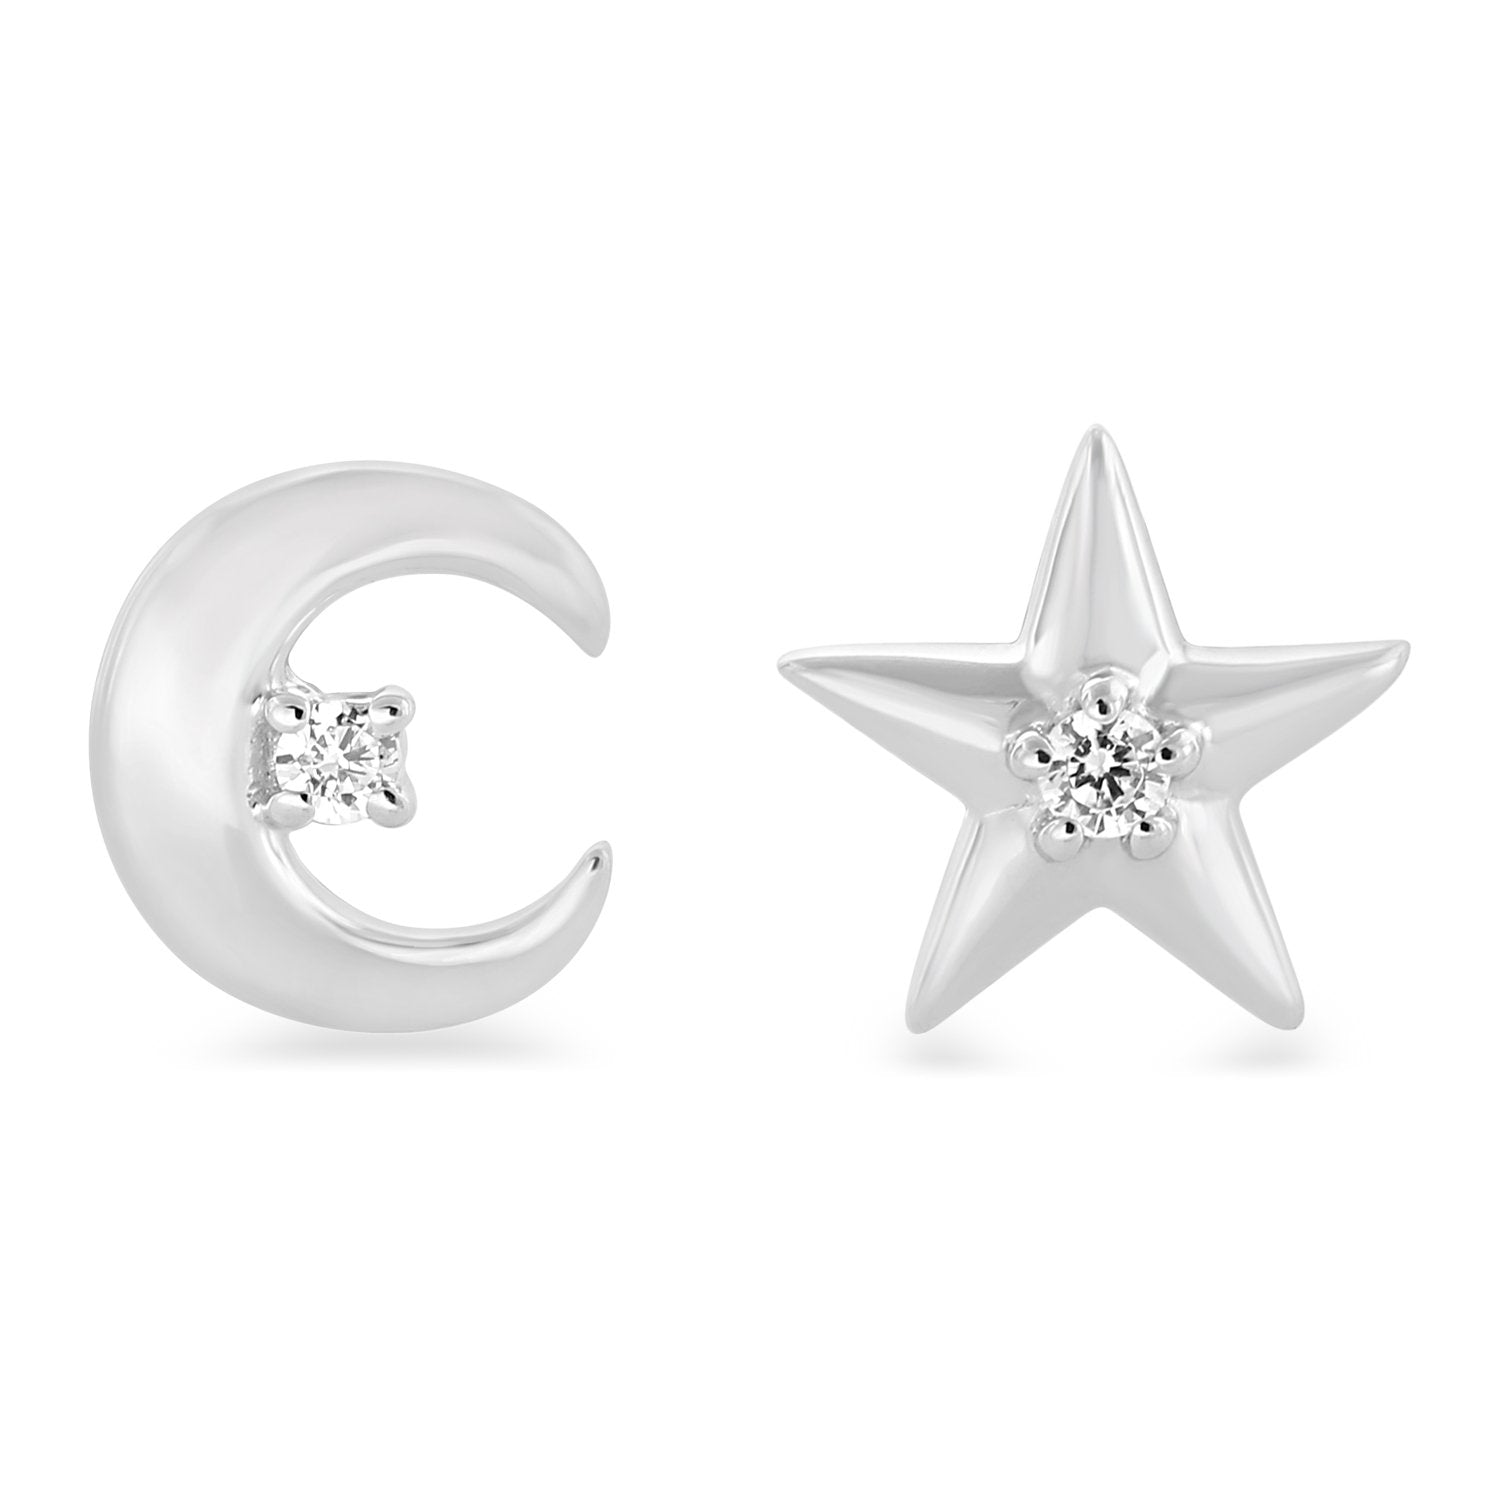 enchanted_disney-jasmine_star_and_moon_earrings-sterling_silver_0.05CTTW_1